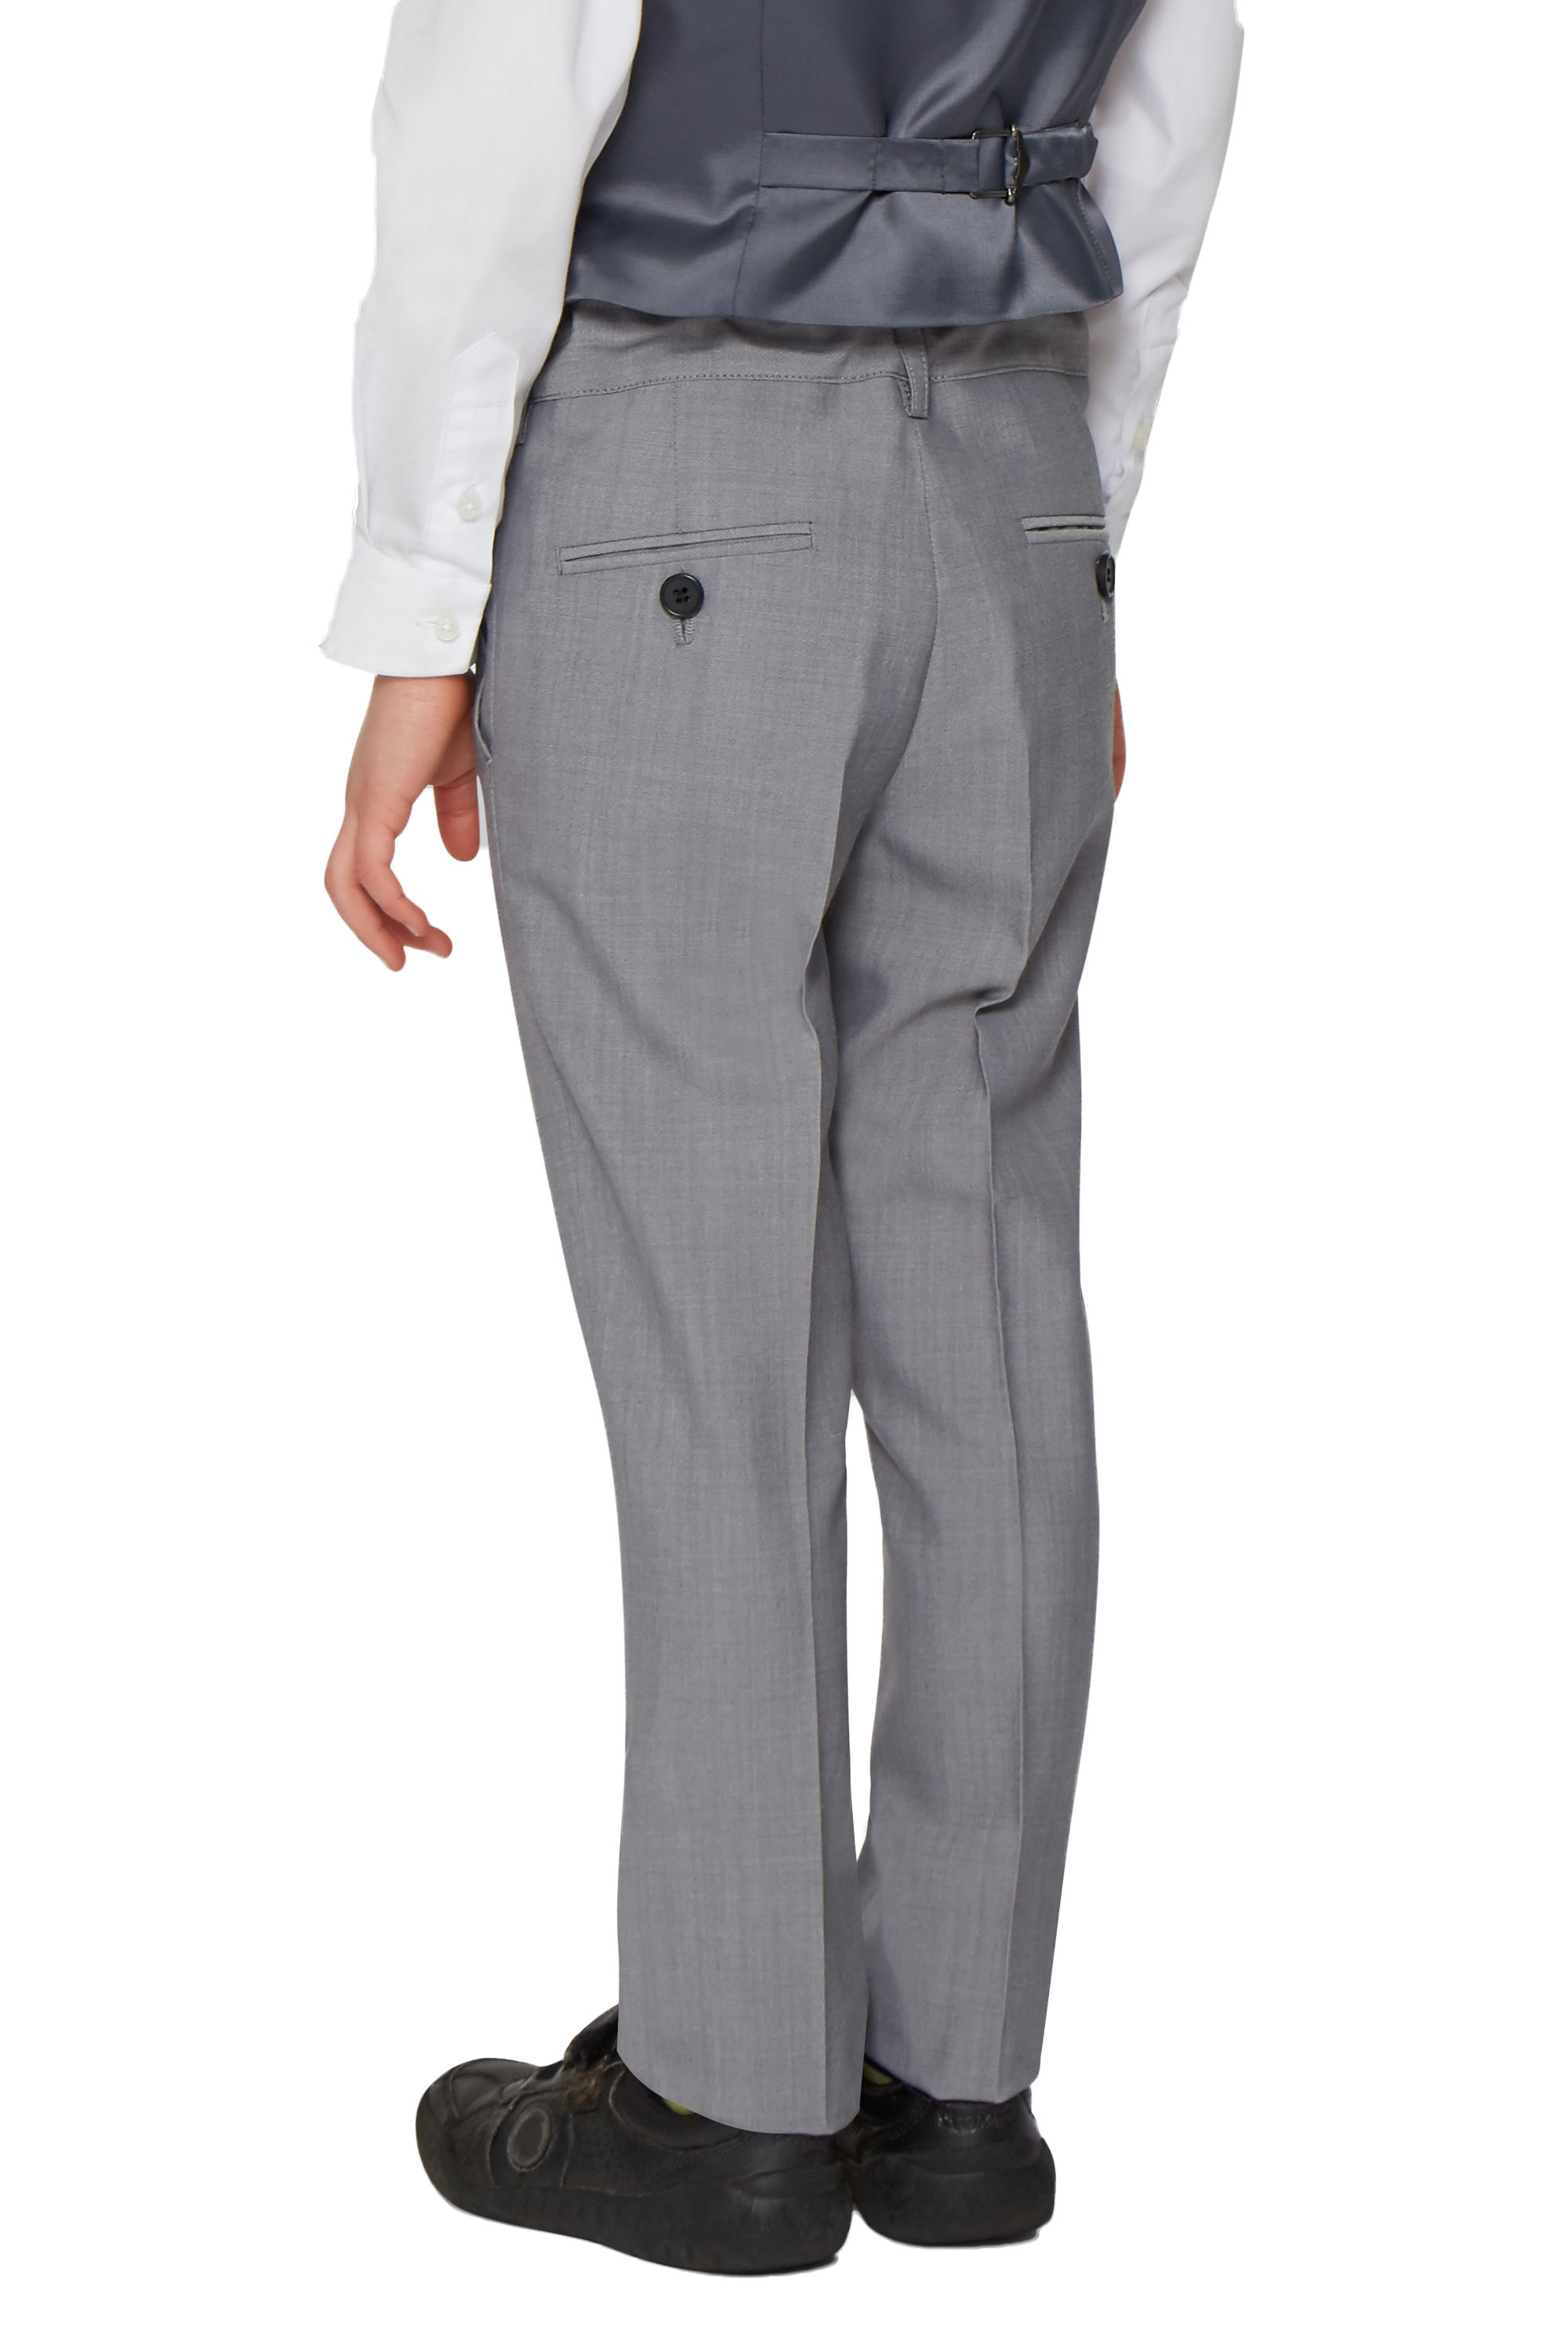 Formal Pants: Shop for Formal Pants online at best prices in India. Choose from a wide range of Formal Pants at mediacrucialxa.cf Get Free 1 or 2 day delivery with Amazon Prime, EMI offers, Cash on Delivery on eligible purchases.